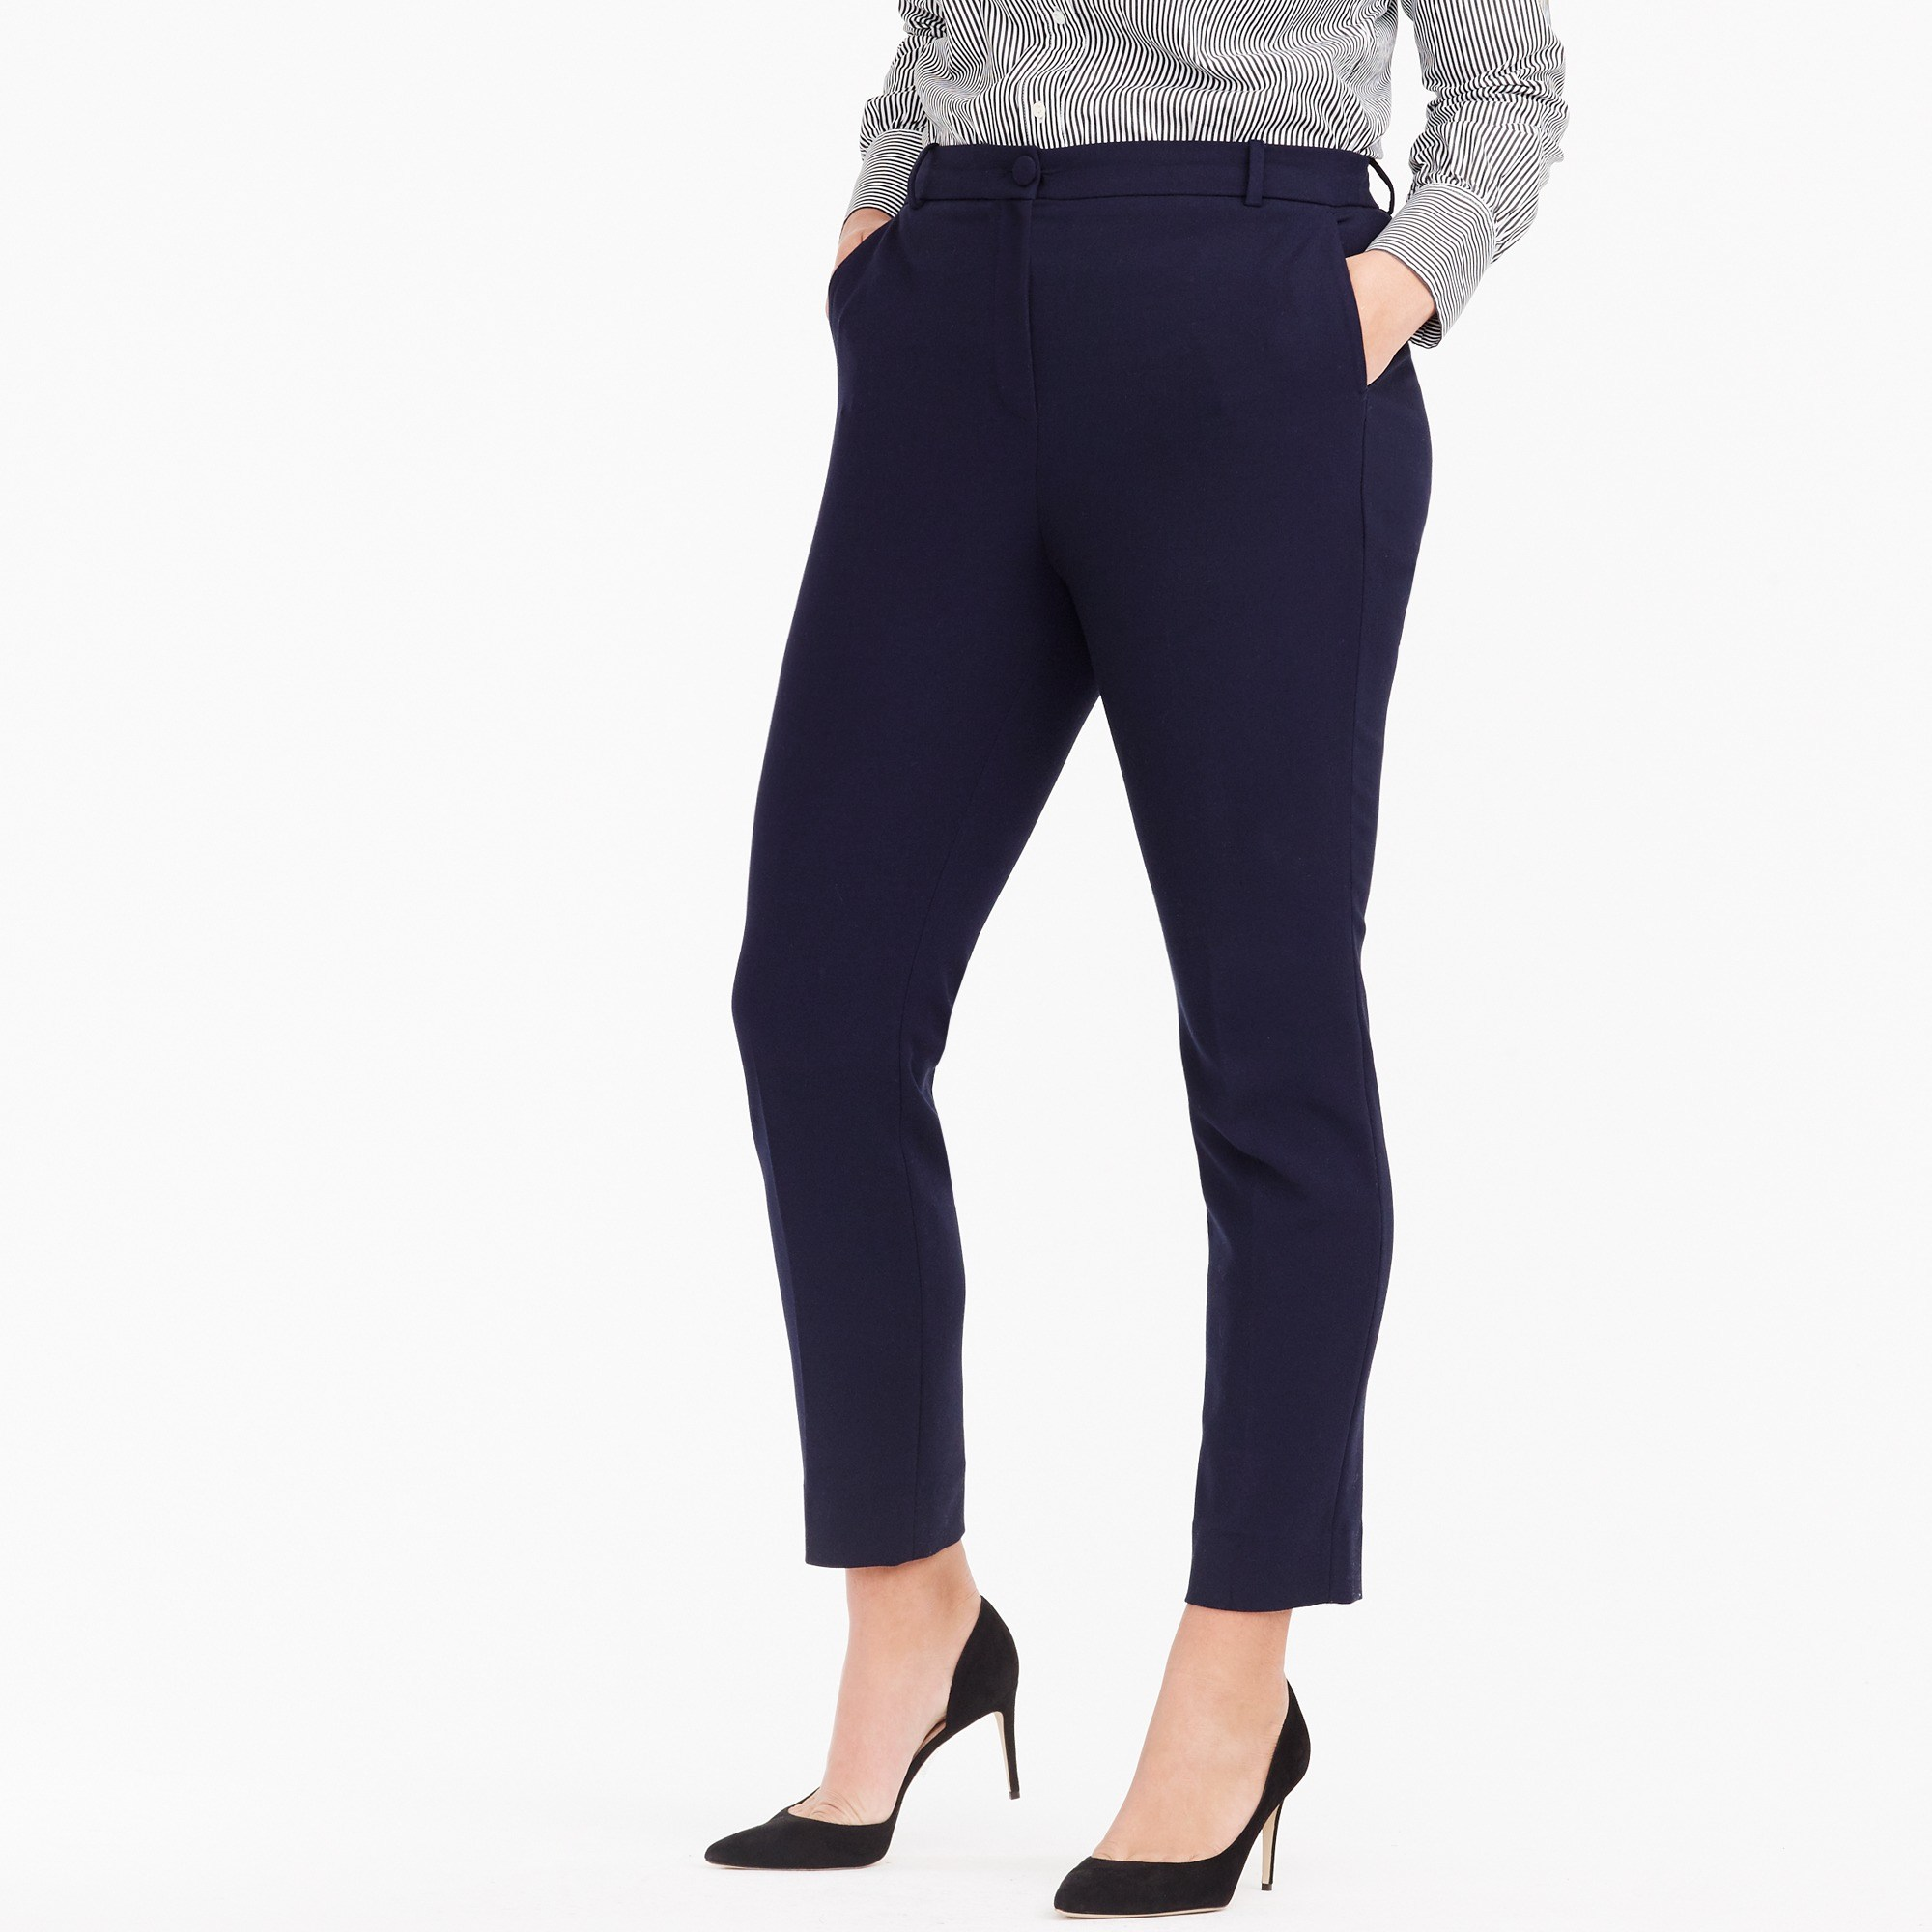 High-rise Cameron pant in four-season stretch - Women's Pants | J.Crew